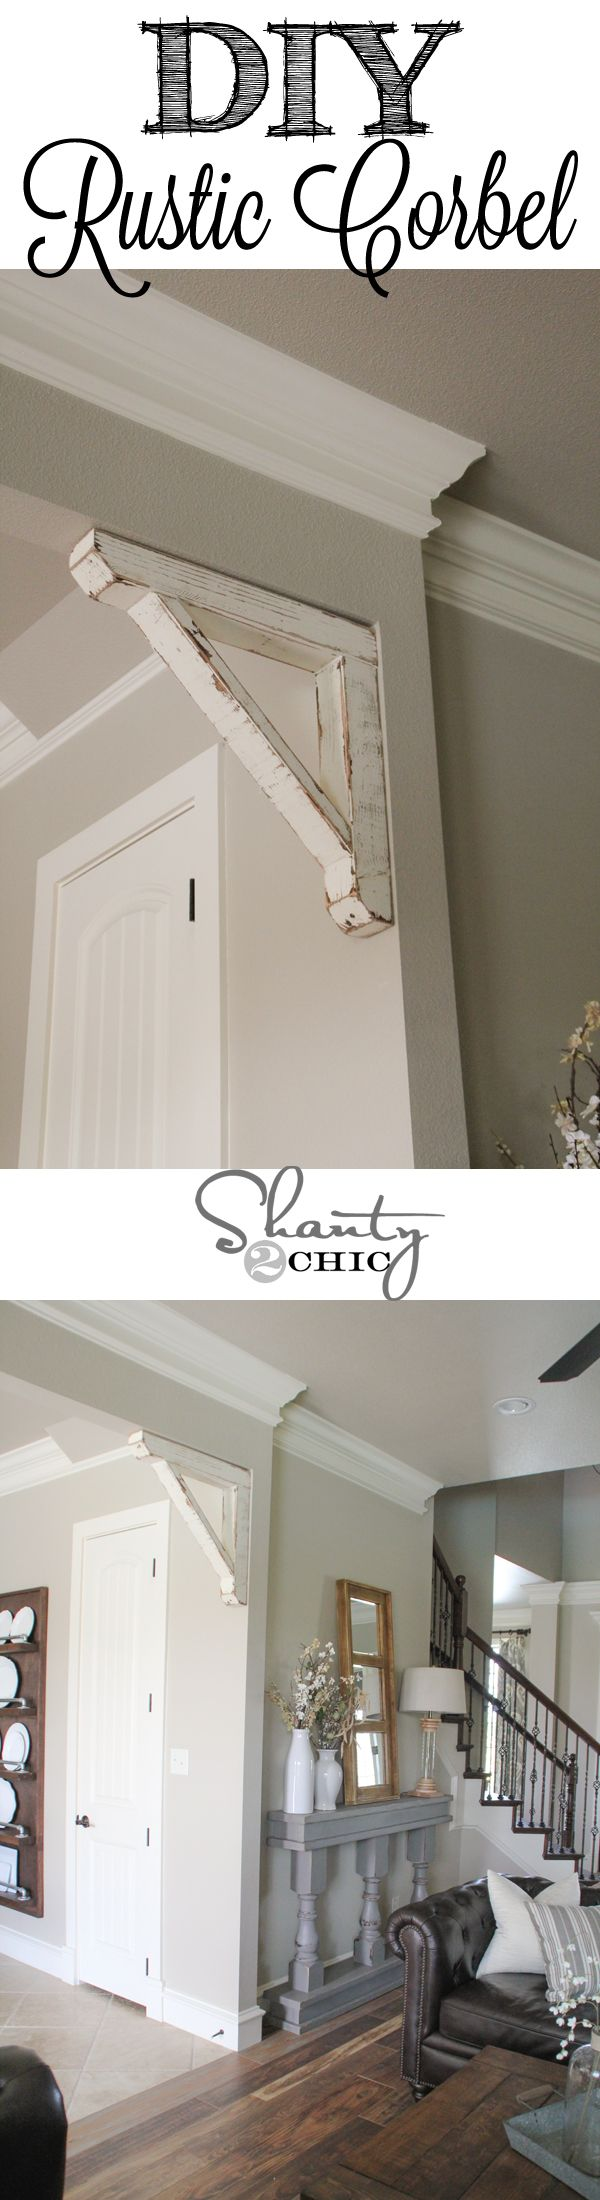 Free and Easy DIY Furniture Project Plan: Learn How to Build Rustic Corbel Accent for Your Home // Shanty-2-Chic.com